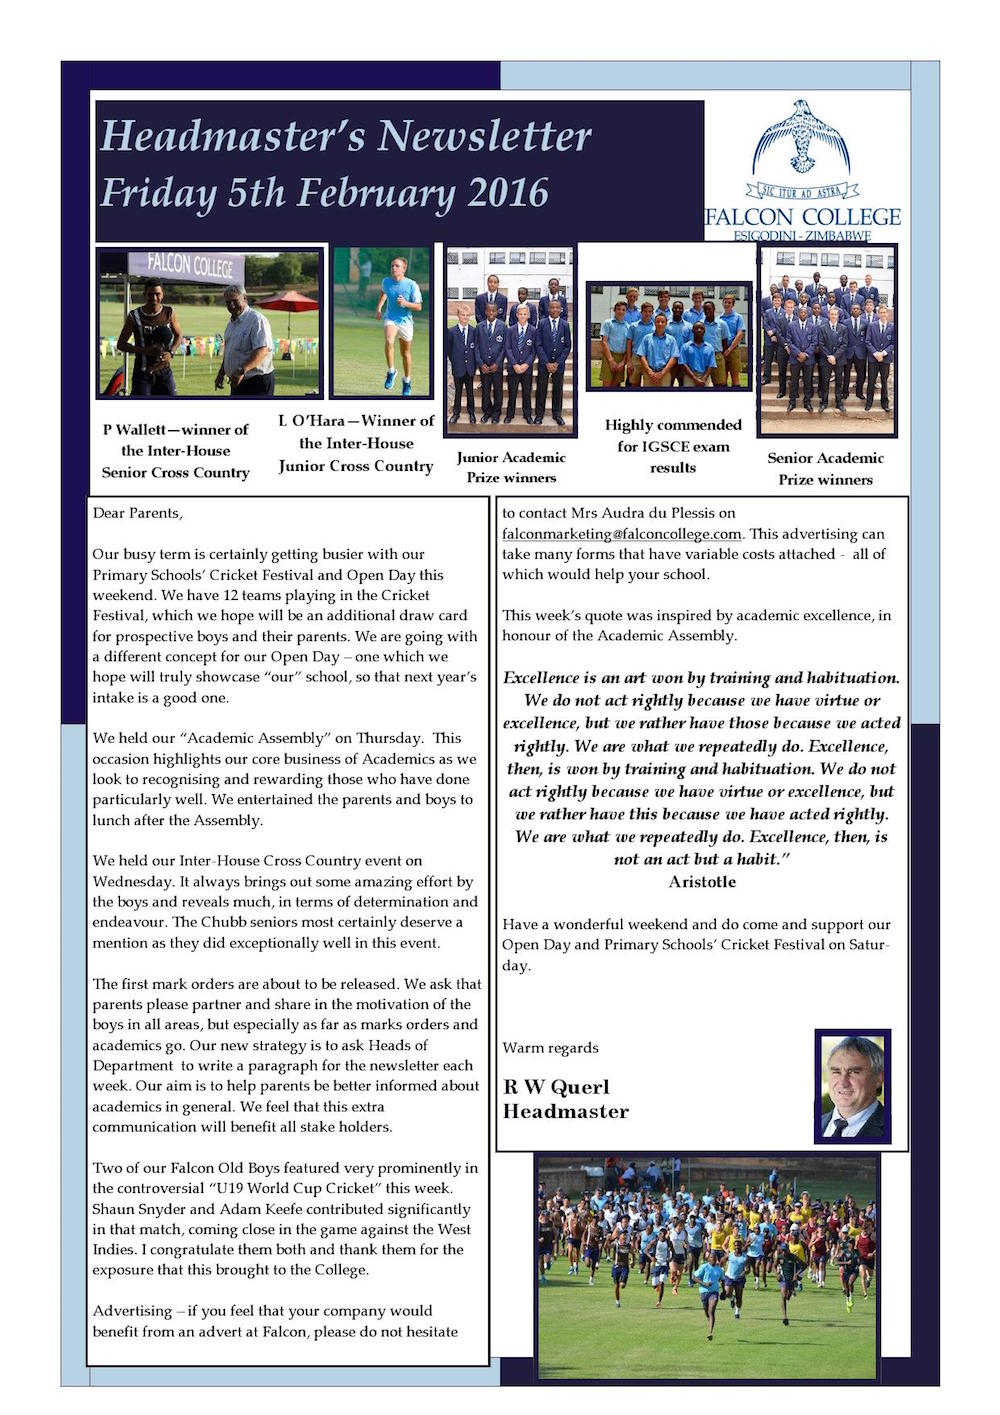 Headmaster's Newsletter Friday 5th February 2016_000001